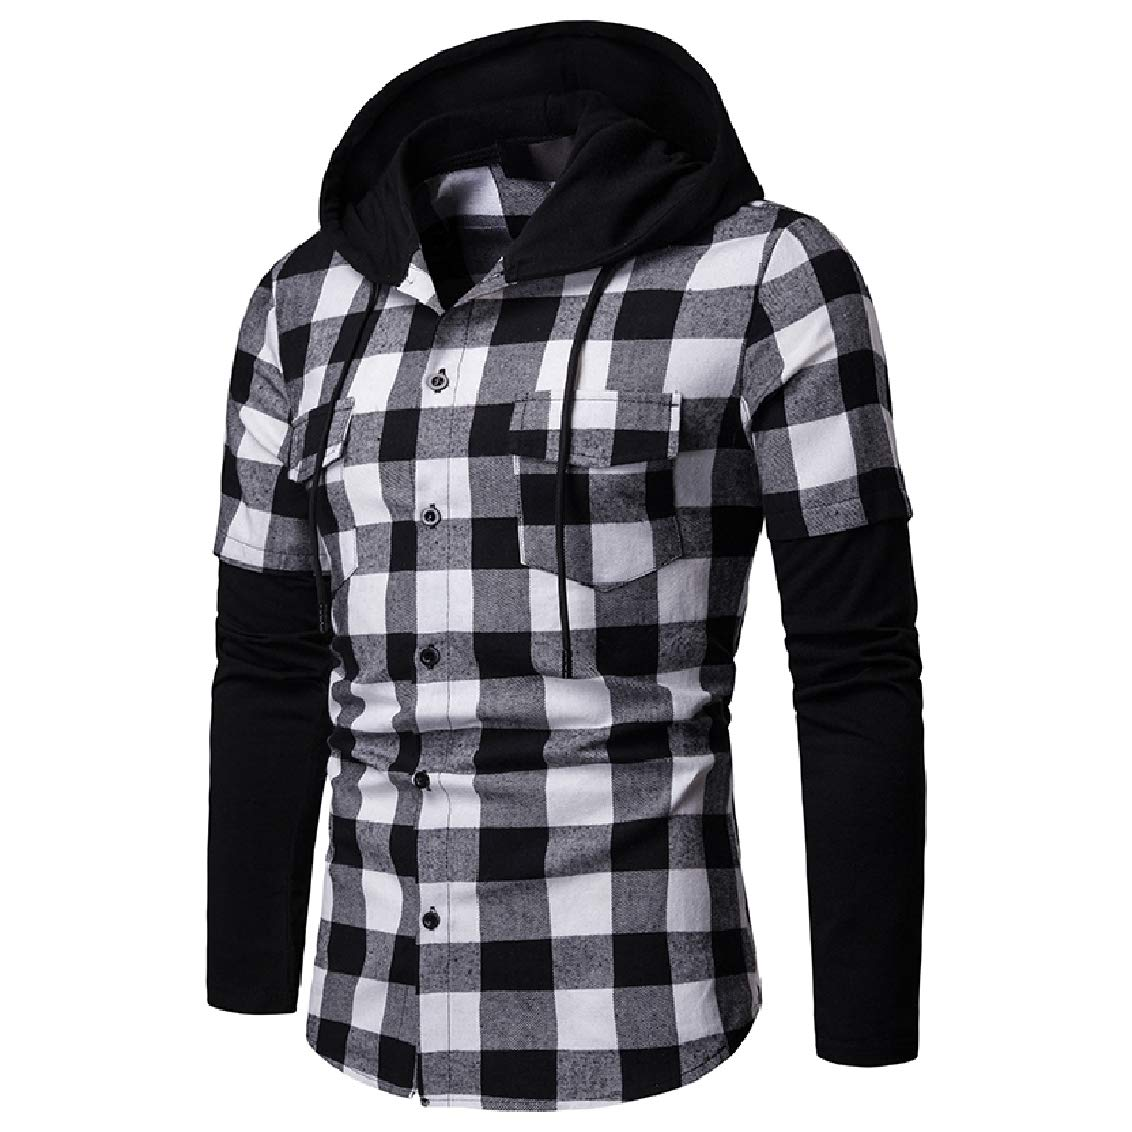 Fubotevic Men Pockets Button Up Hooded Long Sleeve Patchwork Plaid Shirts